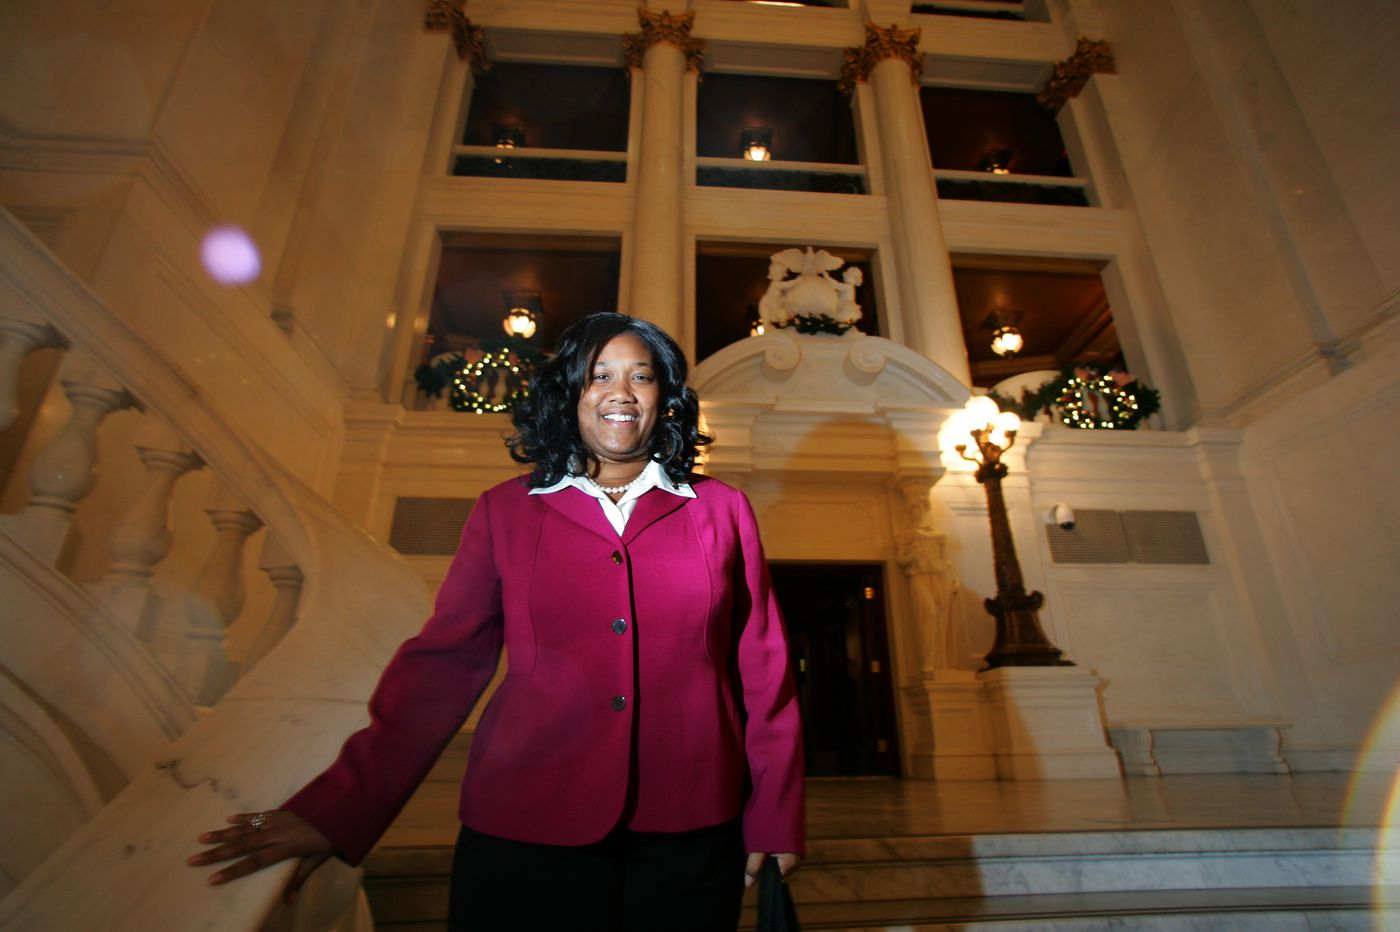 State Rep. Vanessa Brown asks trial judge to overturn bribery conviction